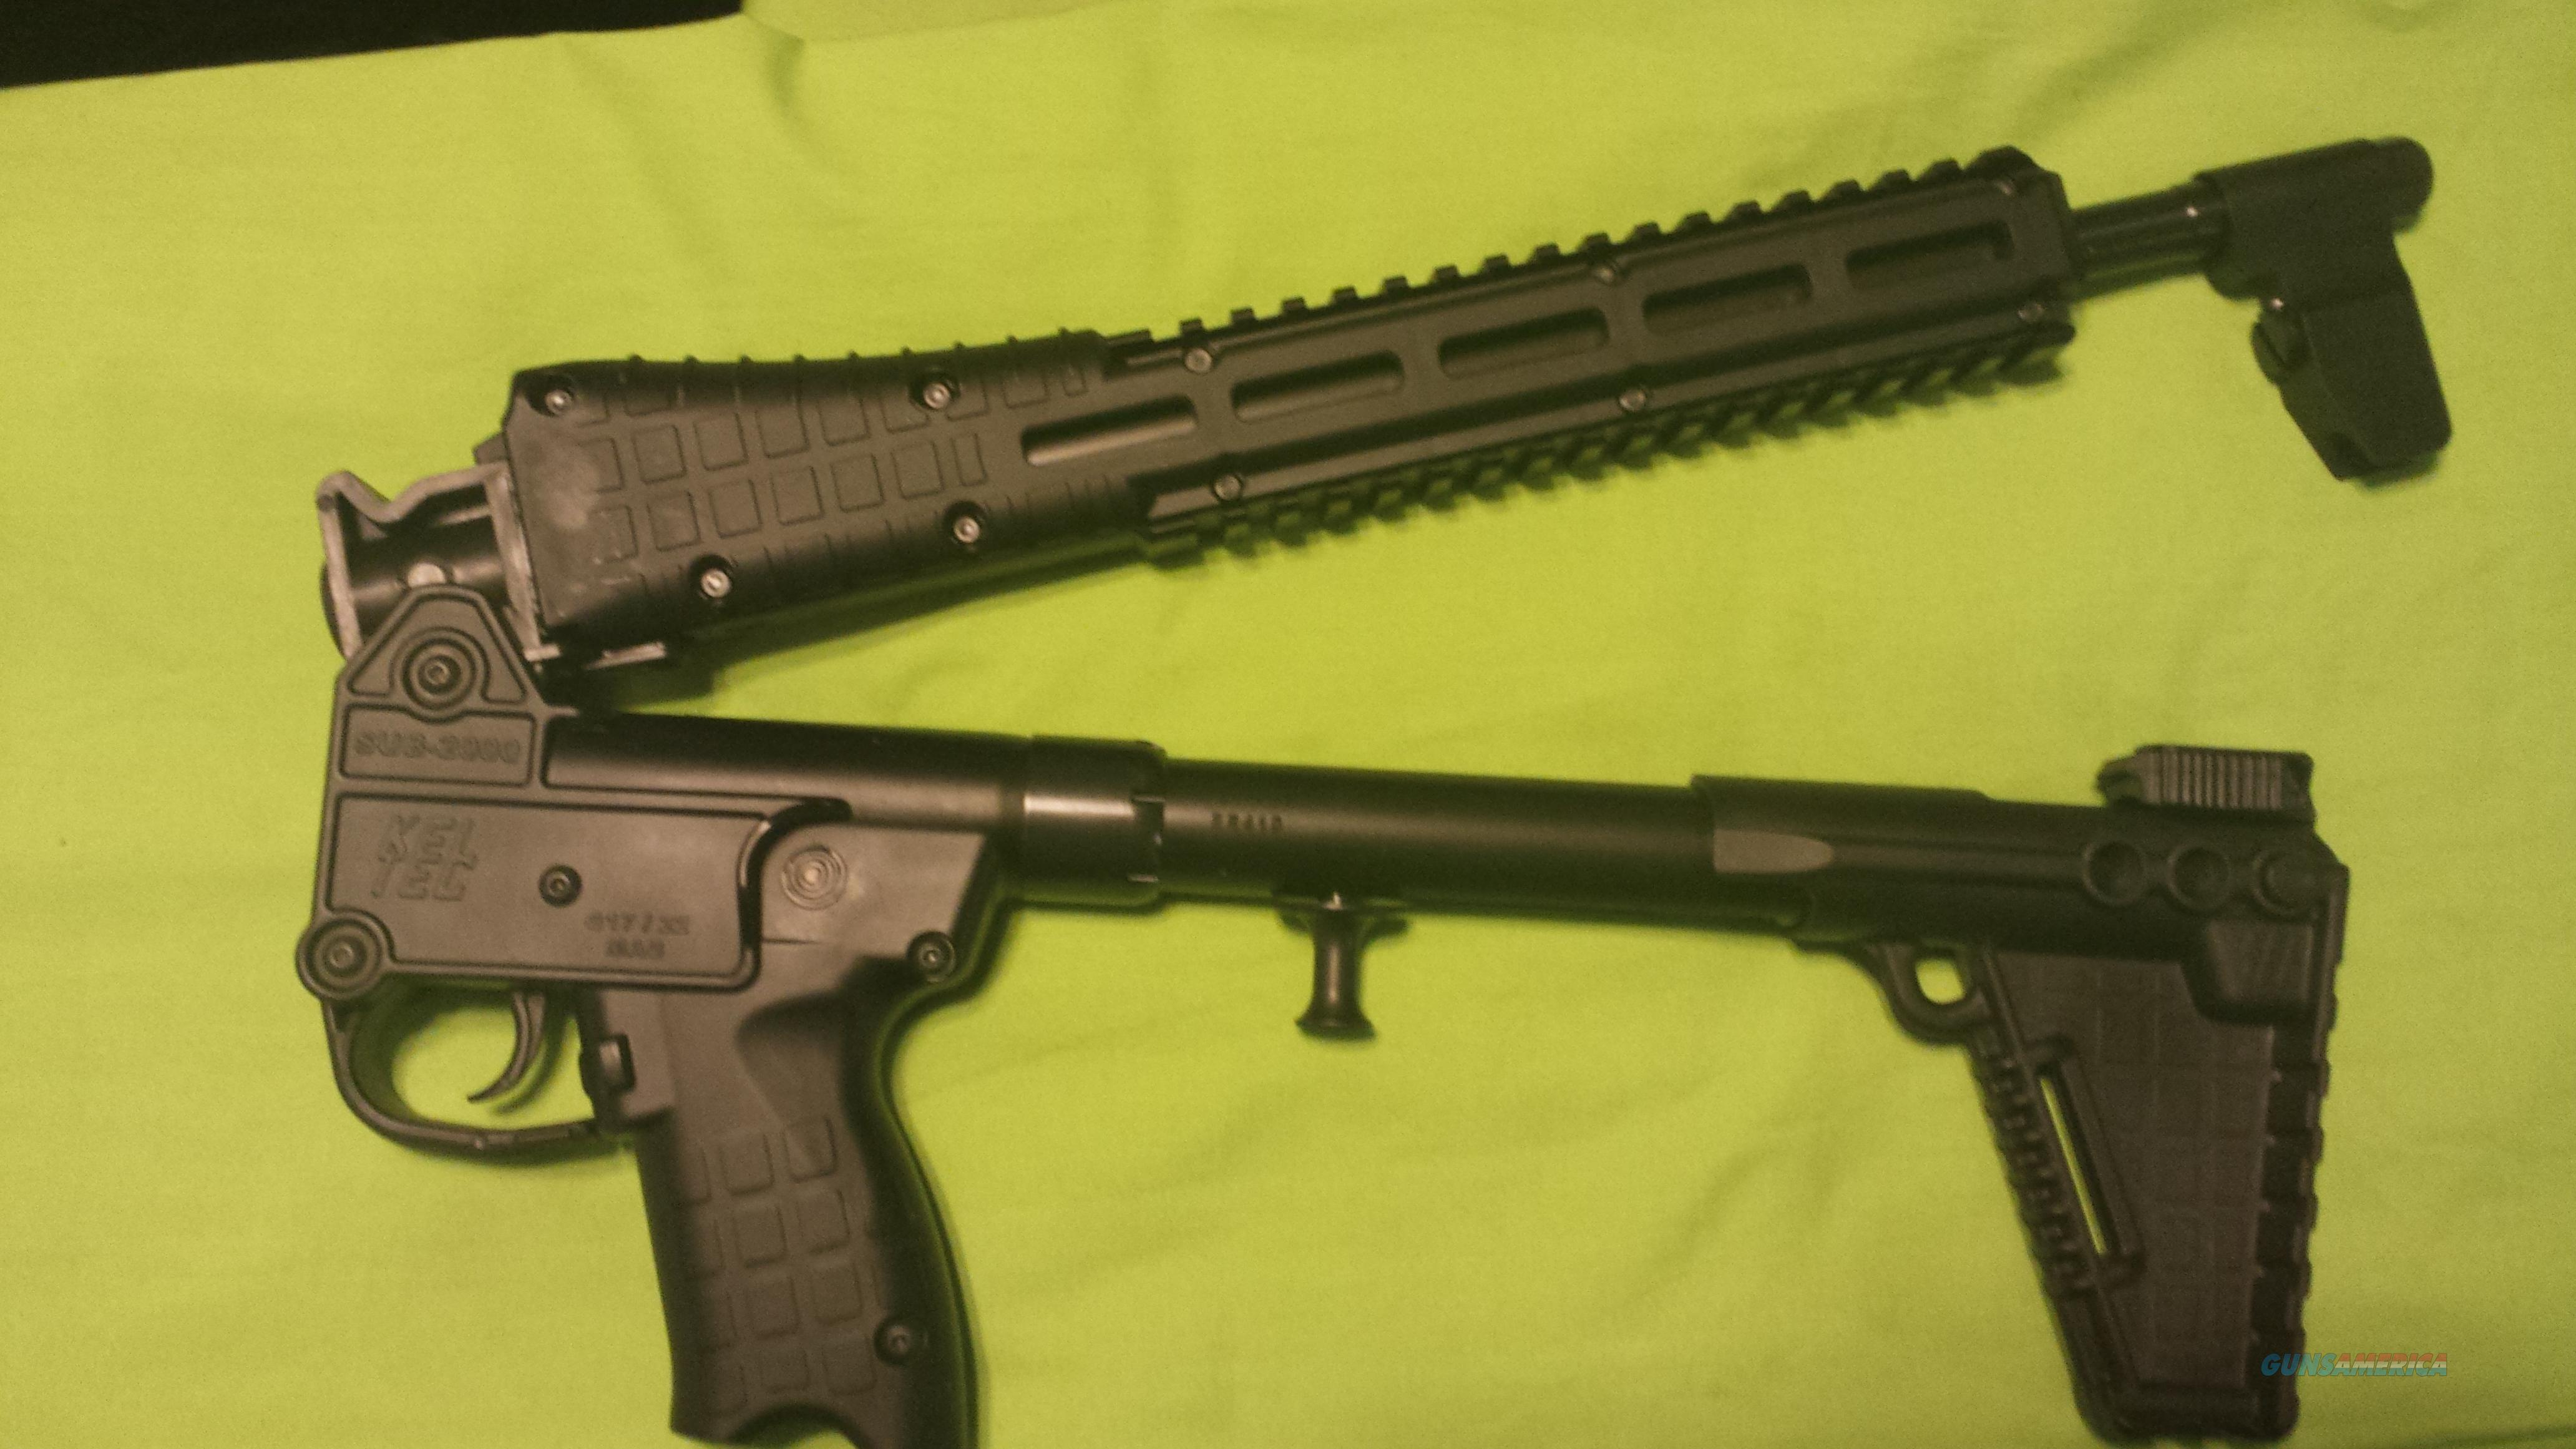 KELTEC SUB 2K 2000 GEN 2 G2 9MM 9 MM S&W M&P9 M&P  Guns > Rifles > Kel-Tec Rifles